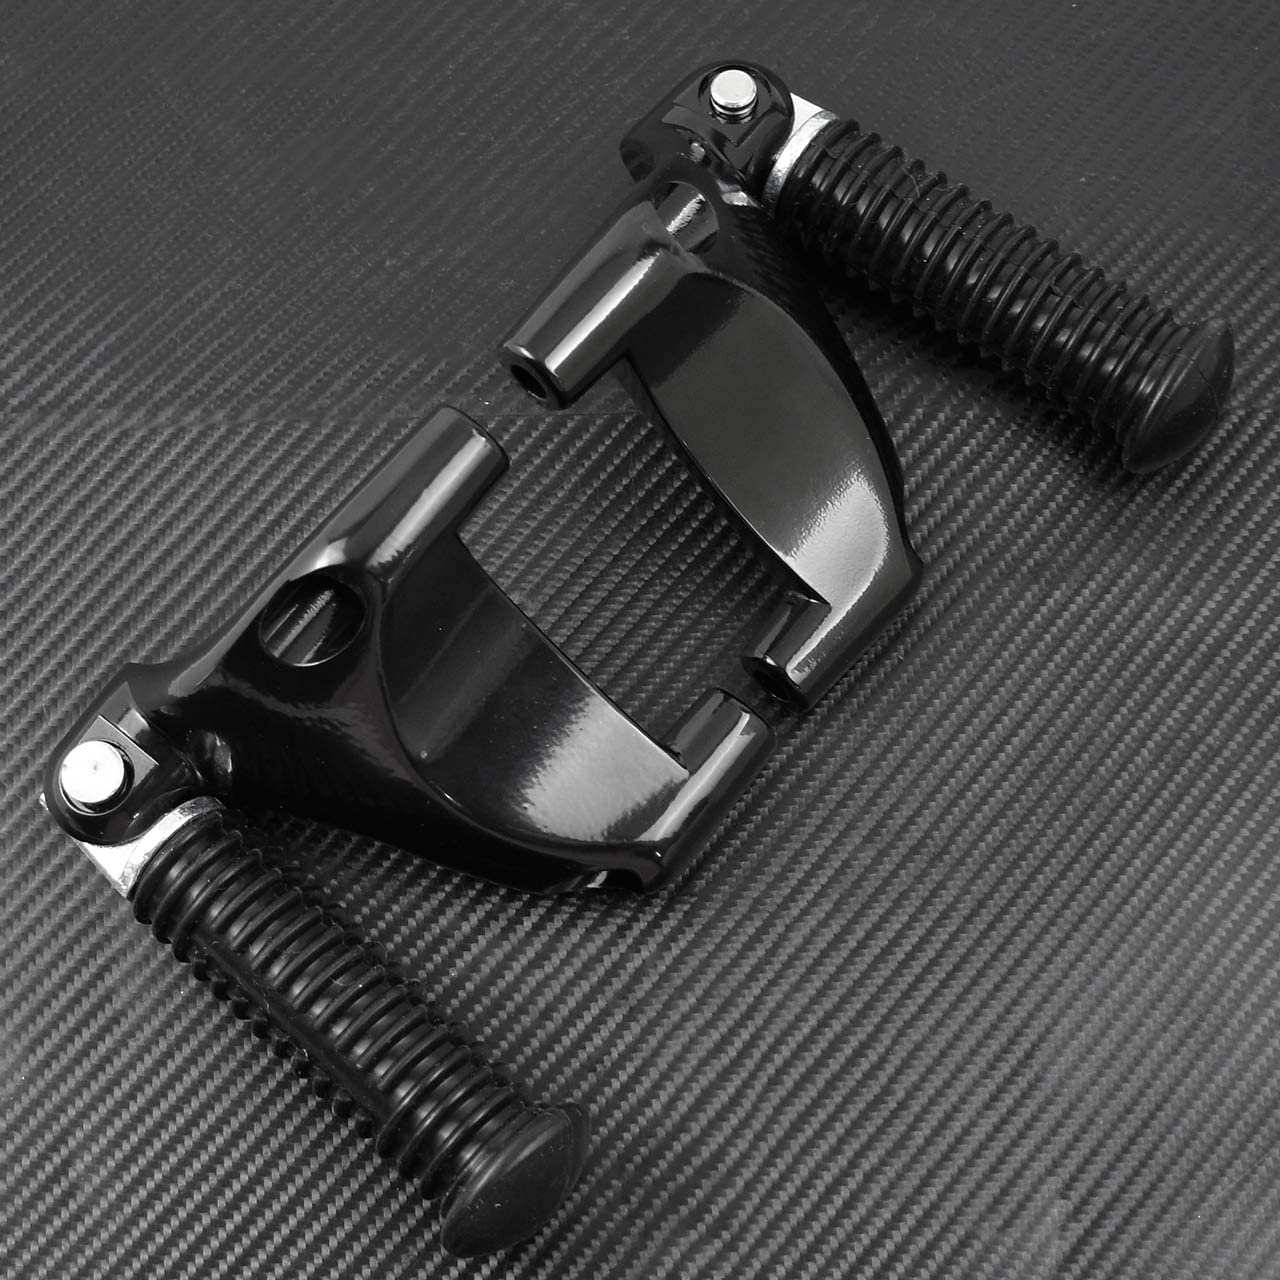 Motorcycle Rear Passenger Foot Pegs Footpegs Foot Rests Pedal /& Mount For Harley Sportster XL883 XL1200 2004-2013